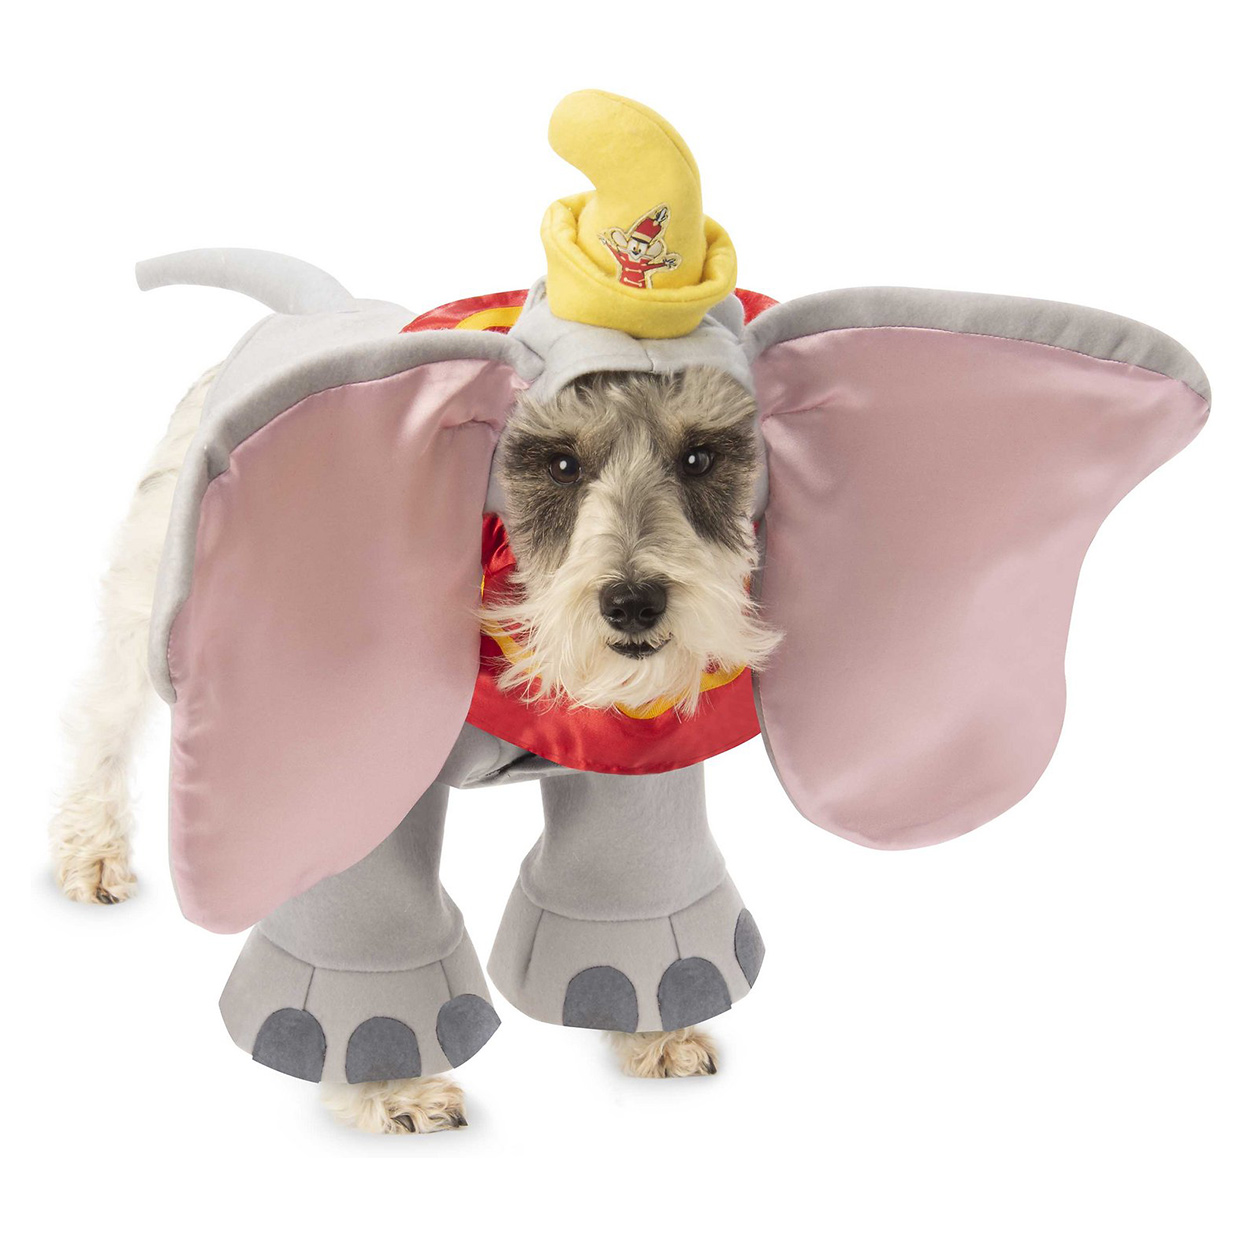 Dog wearing a Rubie's Costume Company Dumbo Costume on a white background